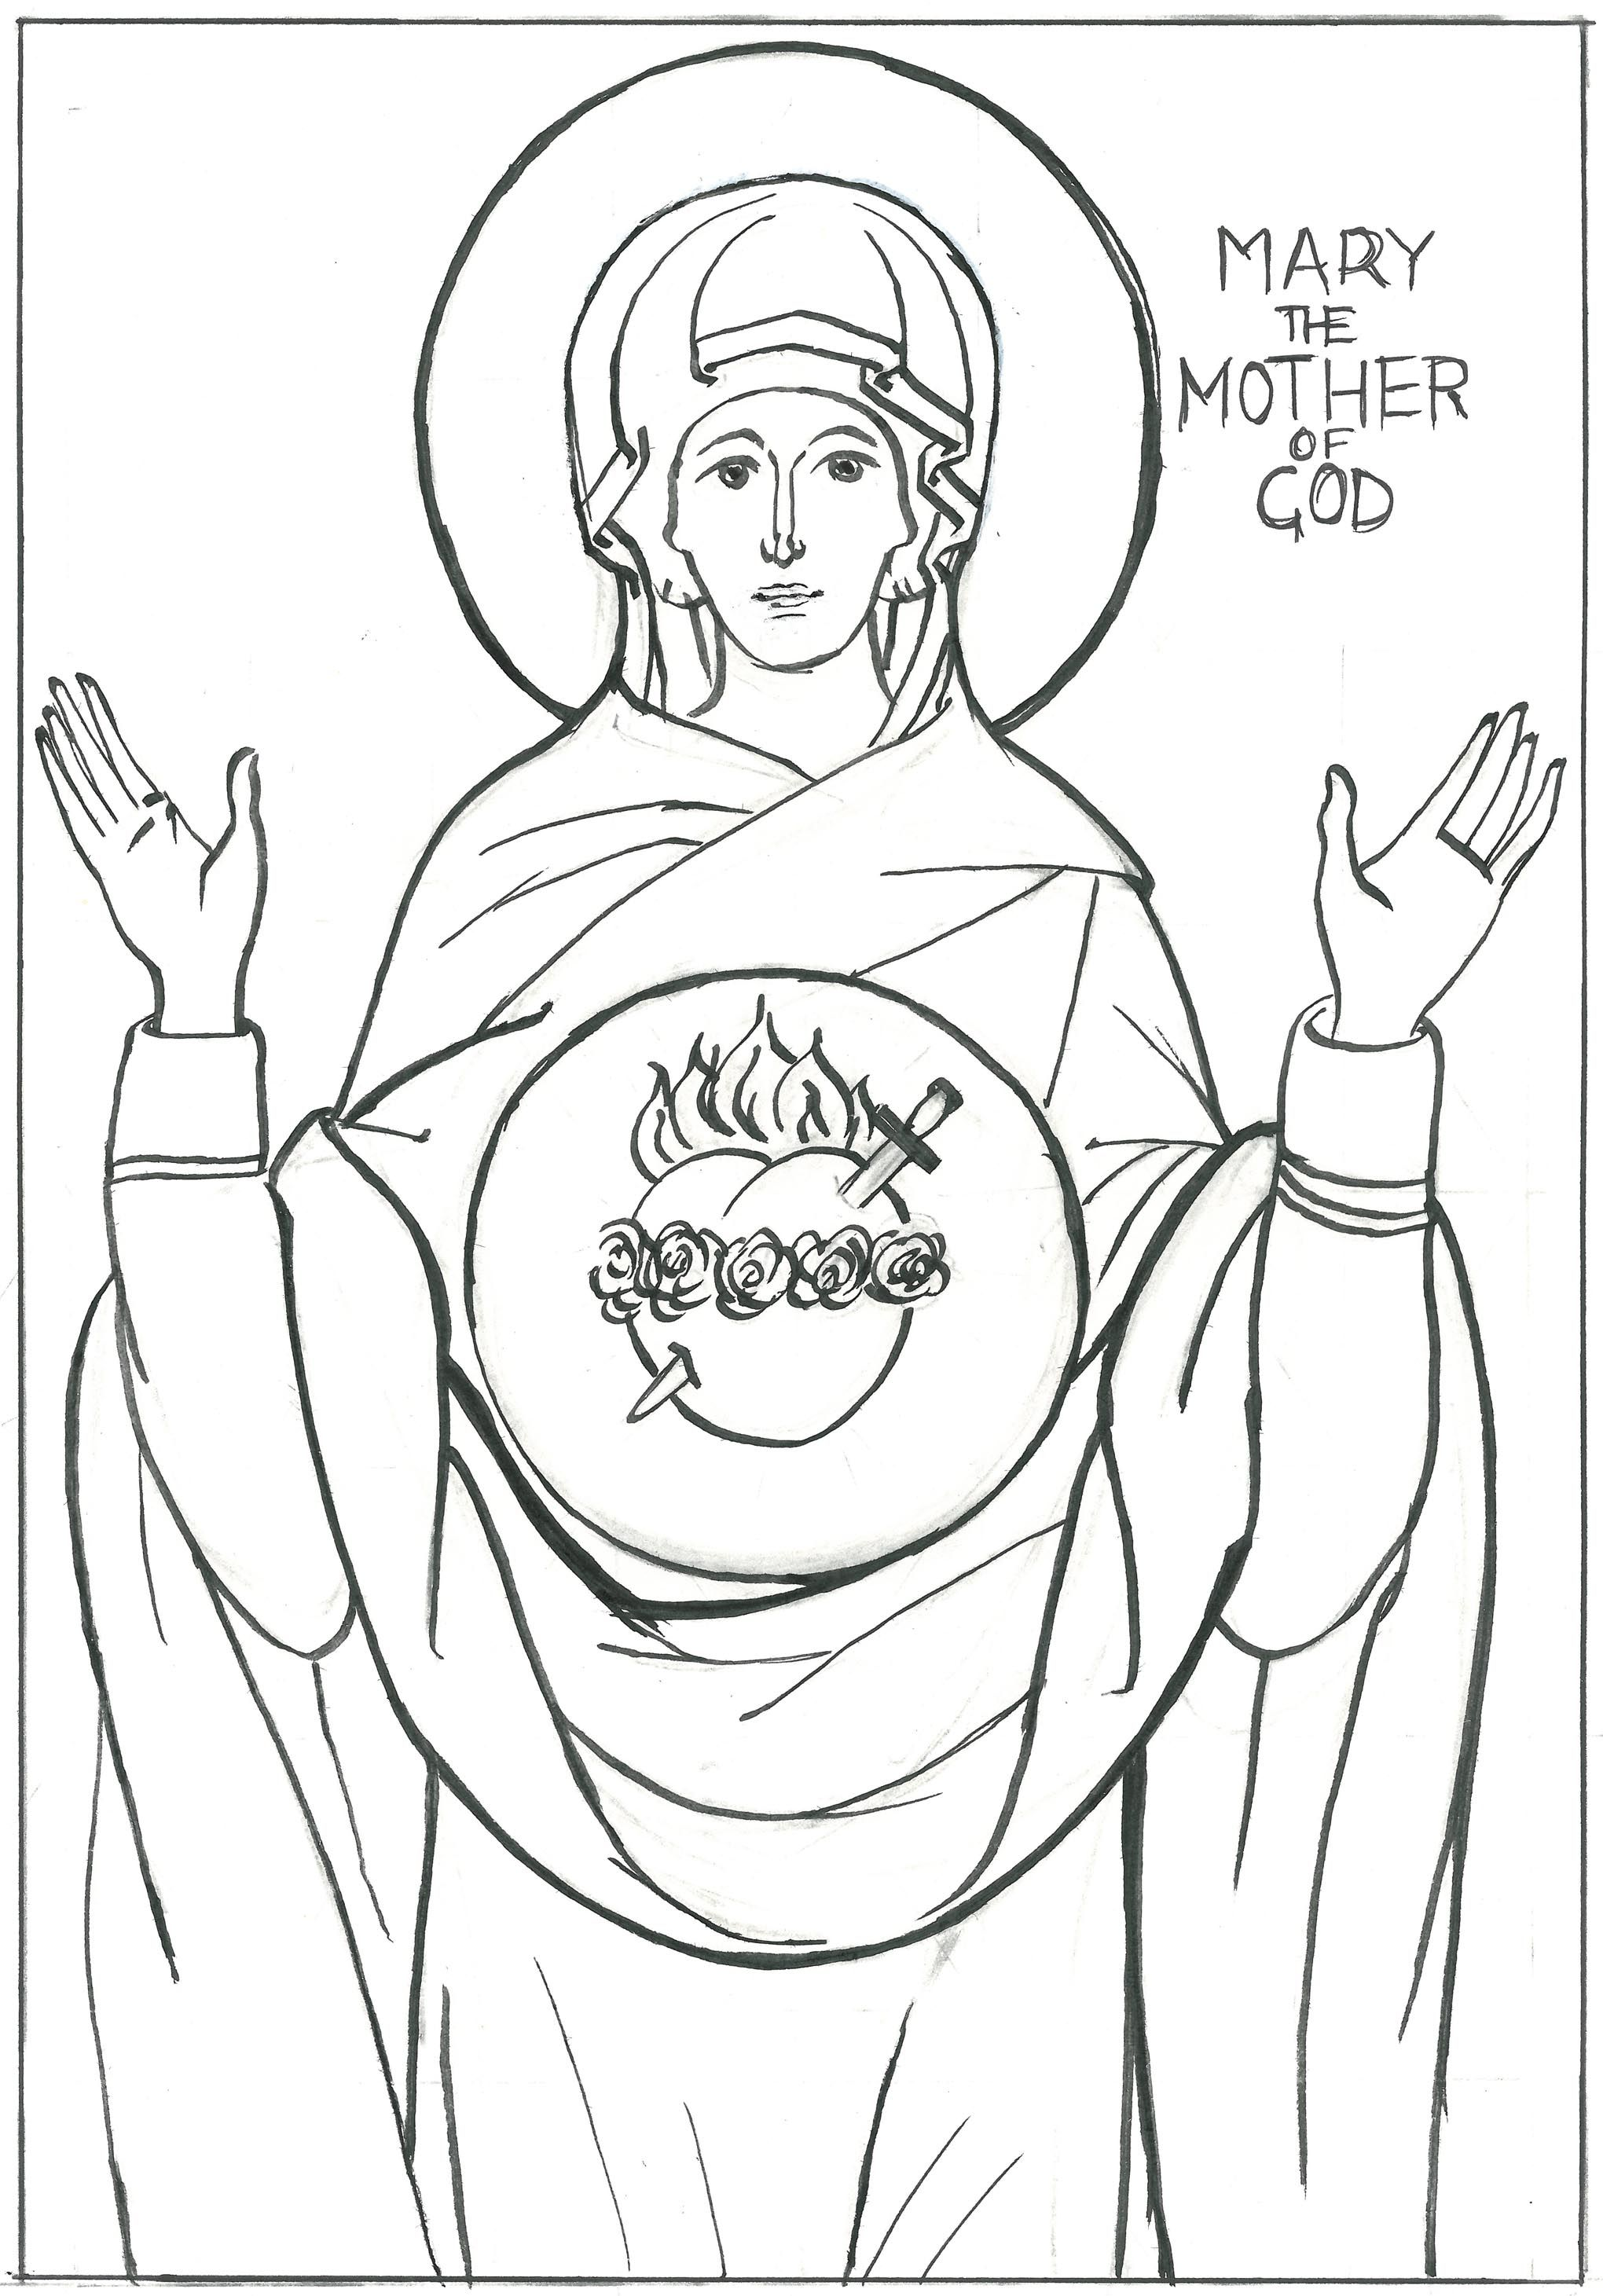 Coloring Books Mary Mother Of God 2040x2922